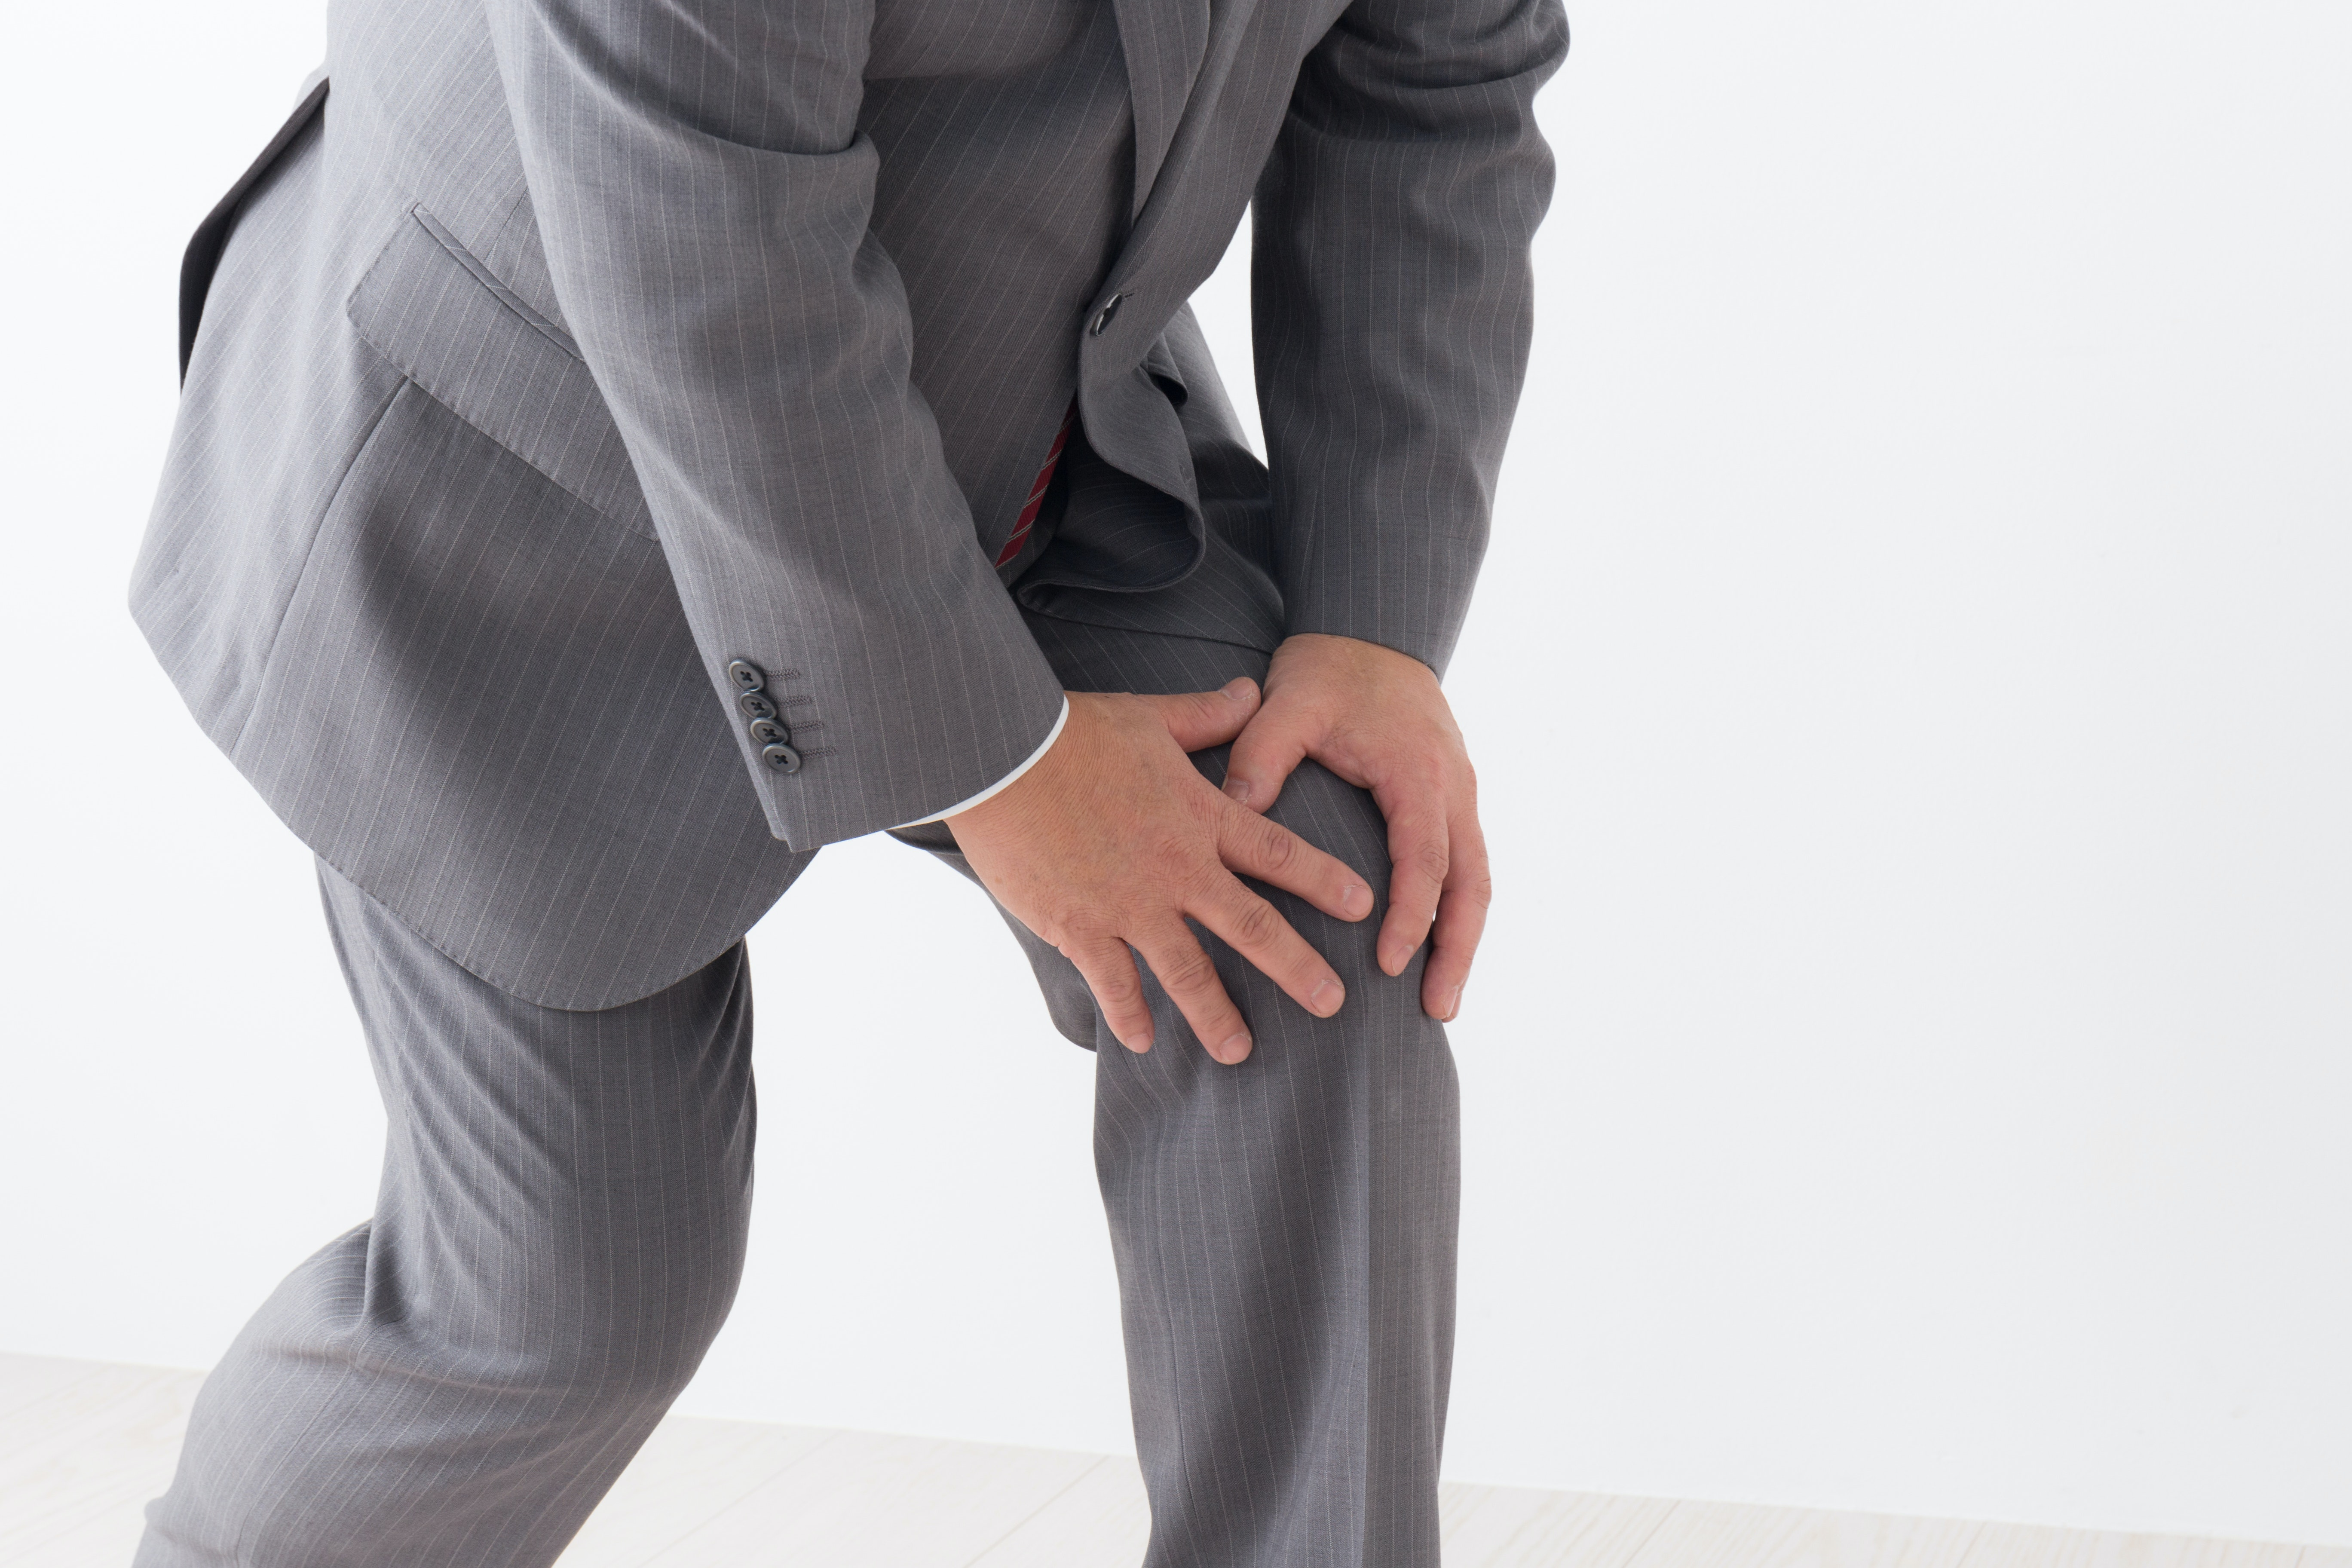 An image depicting a person suffering from severe knee pain symptoms